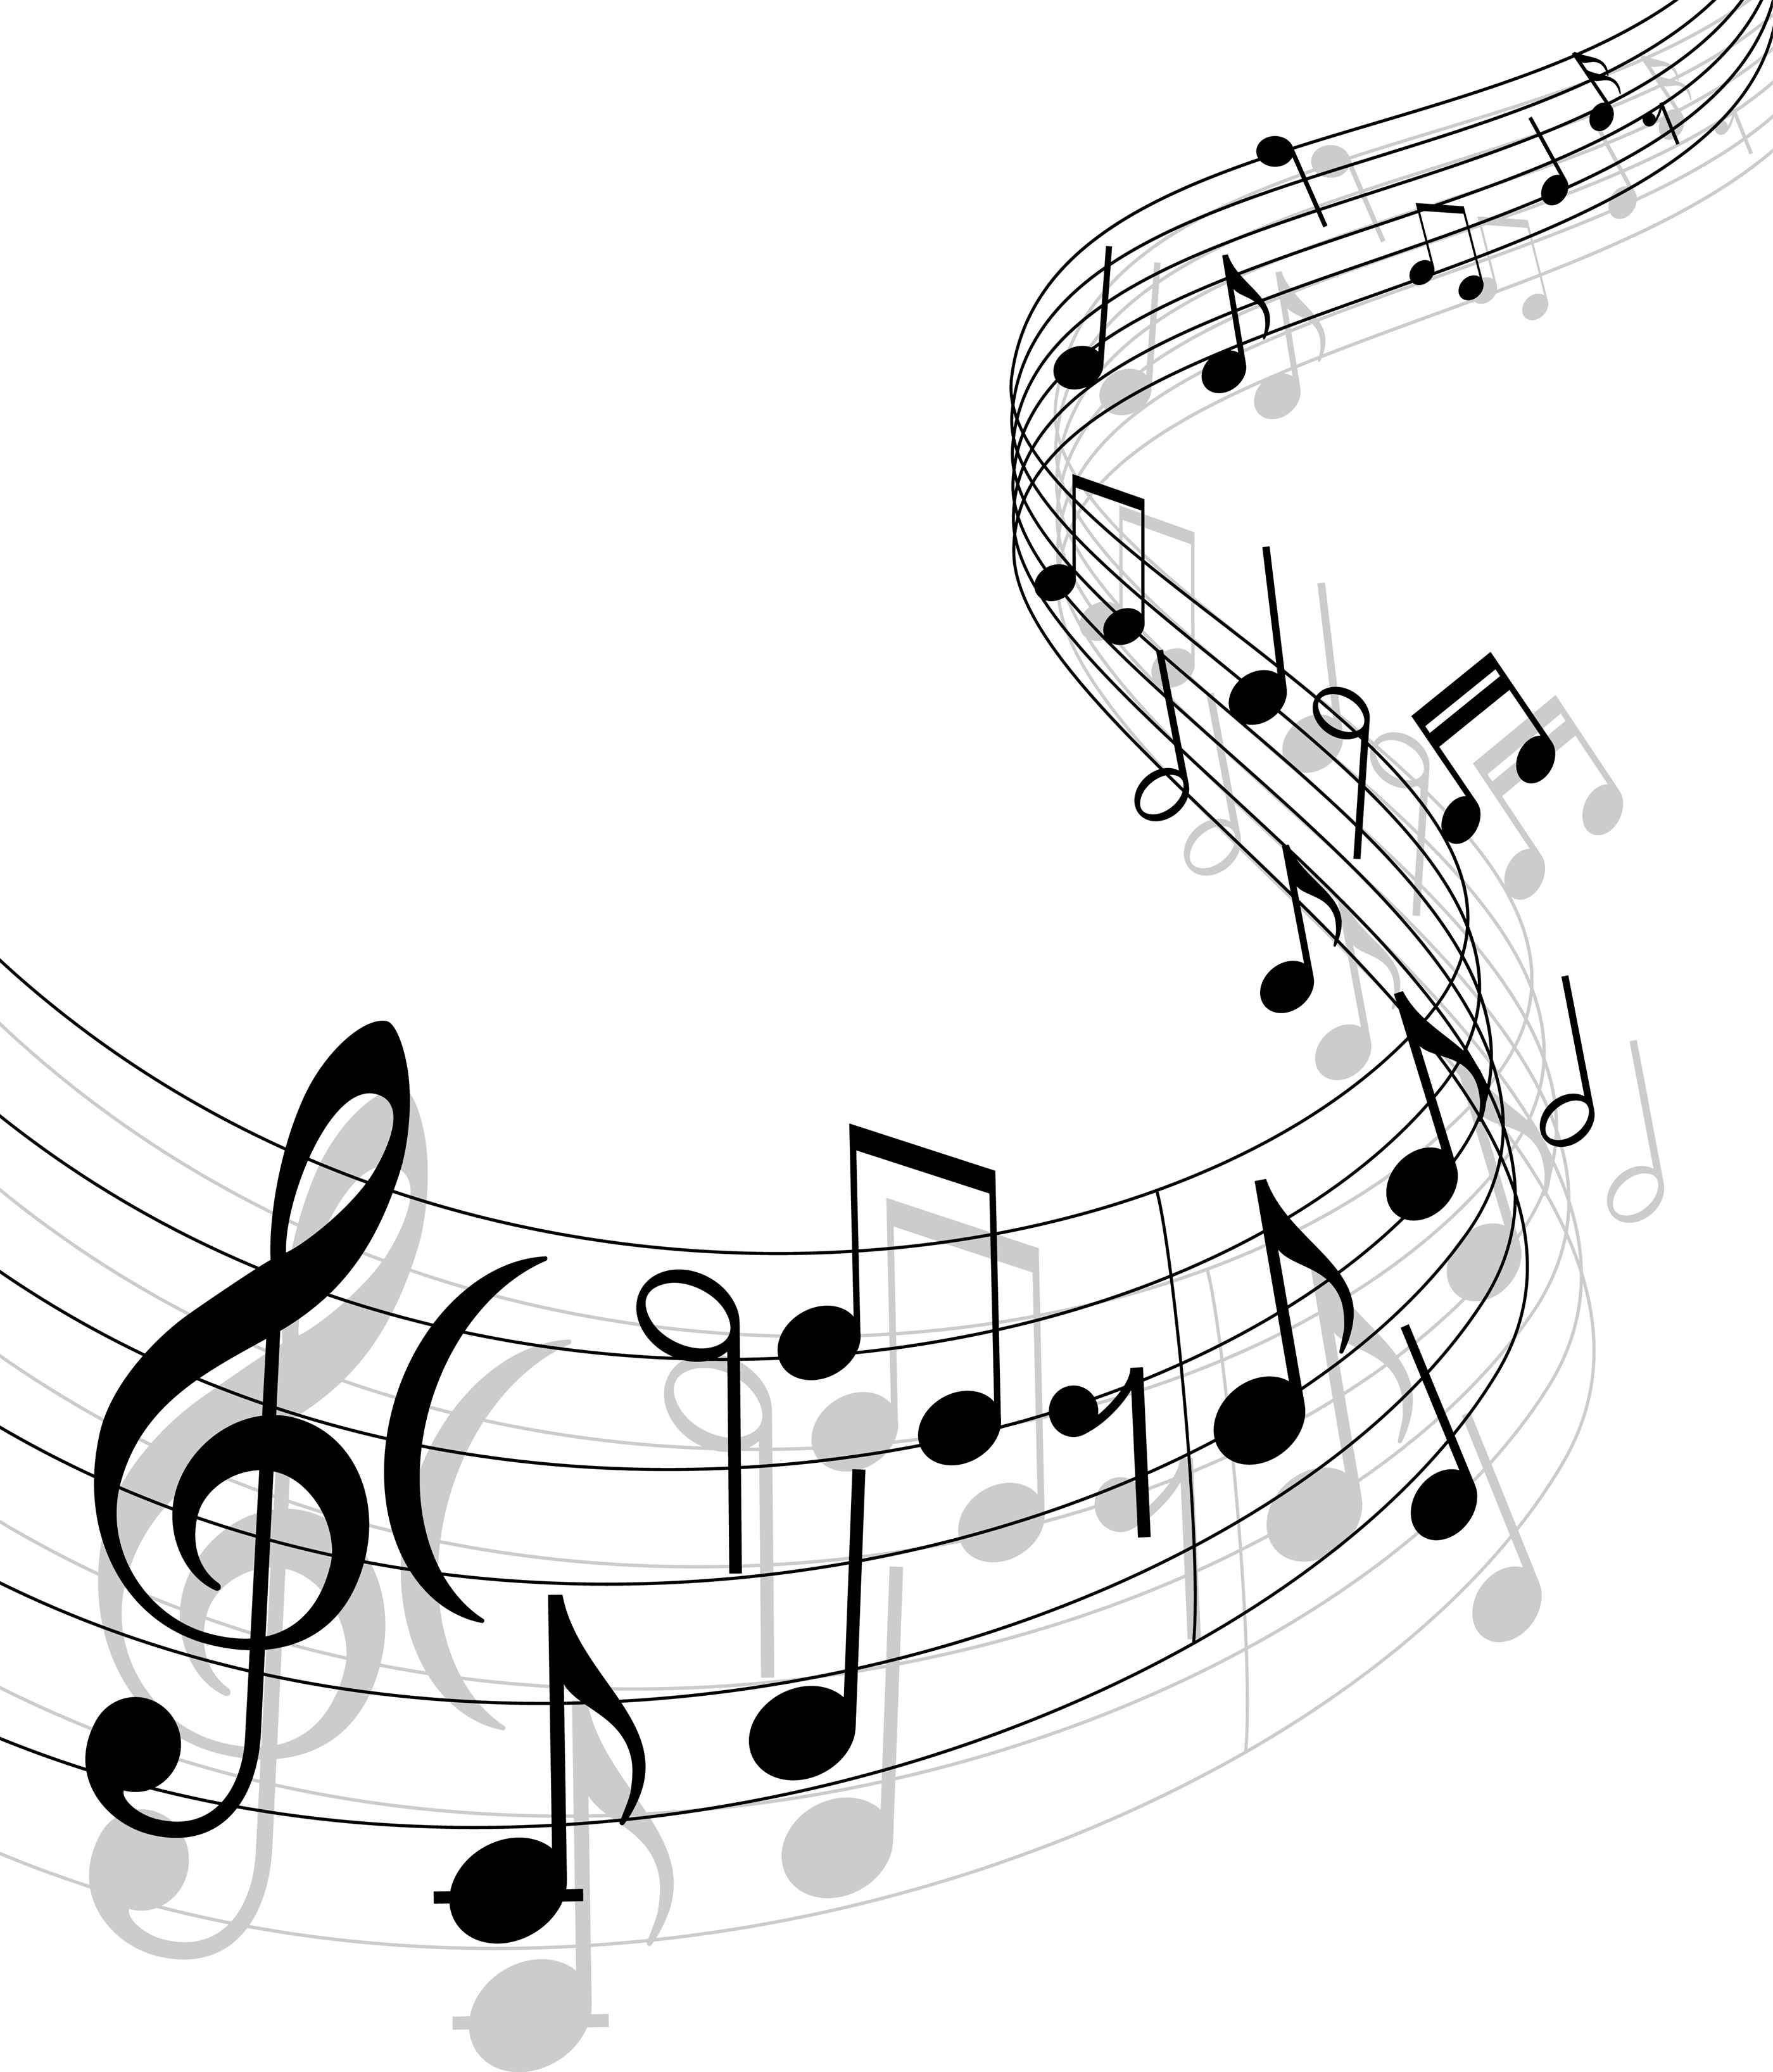 Music notes musical.